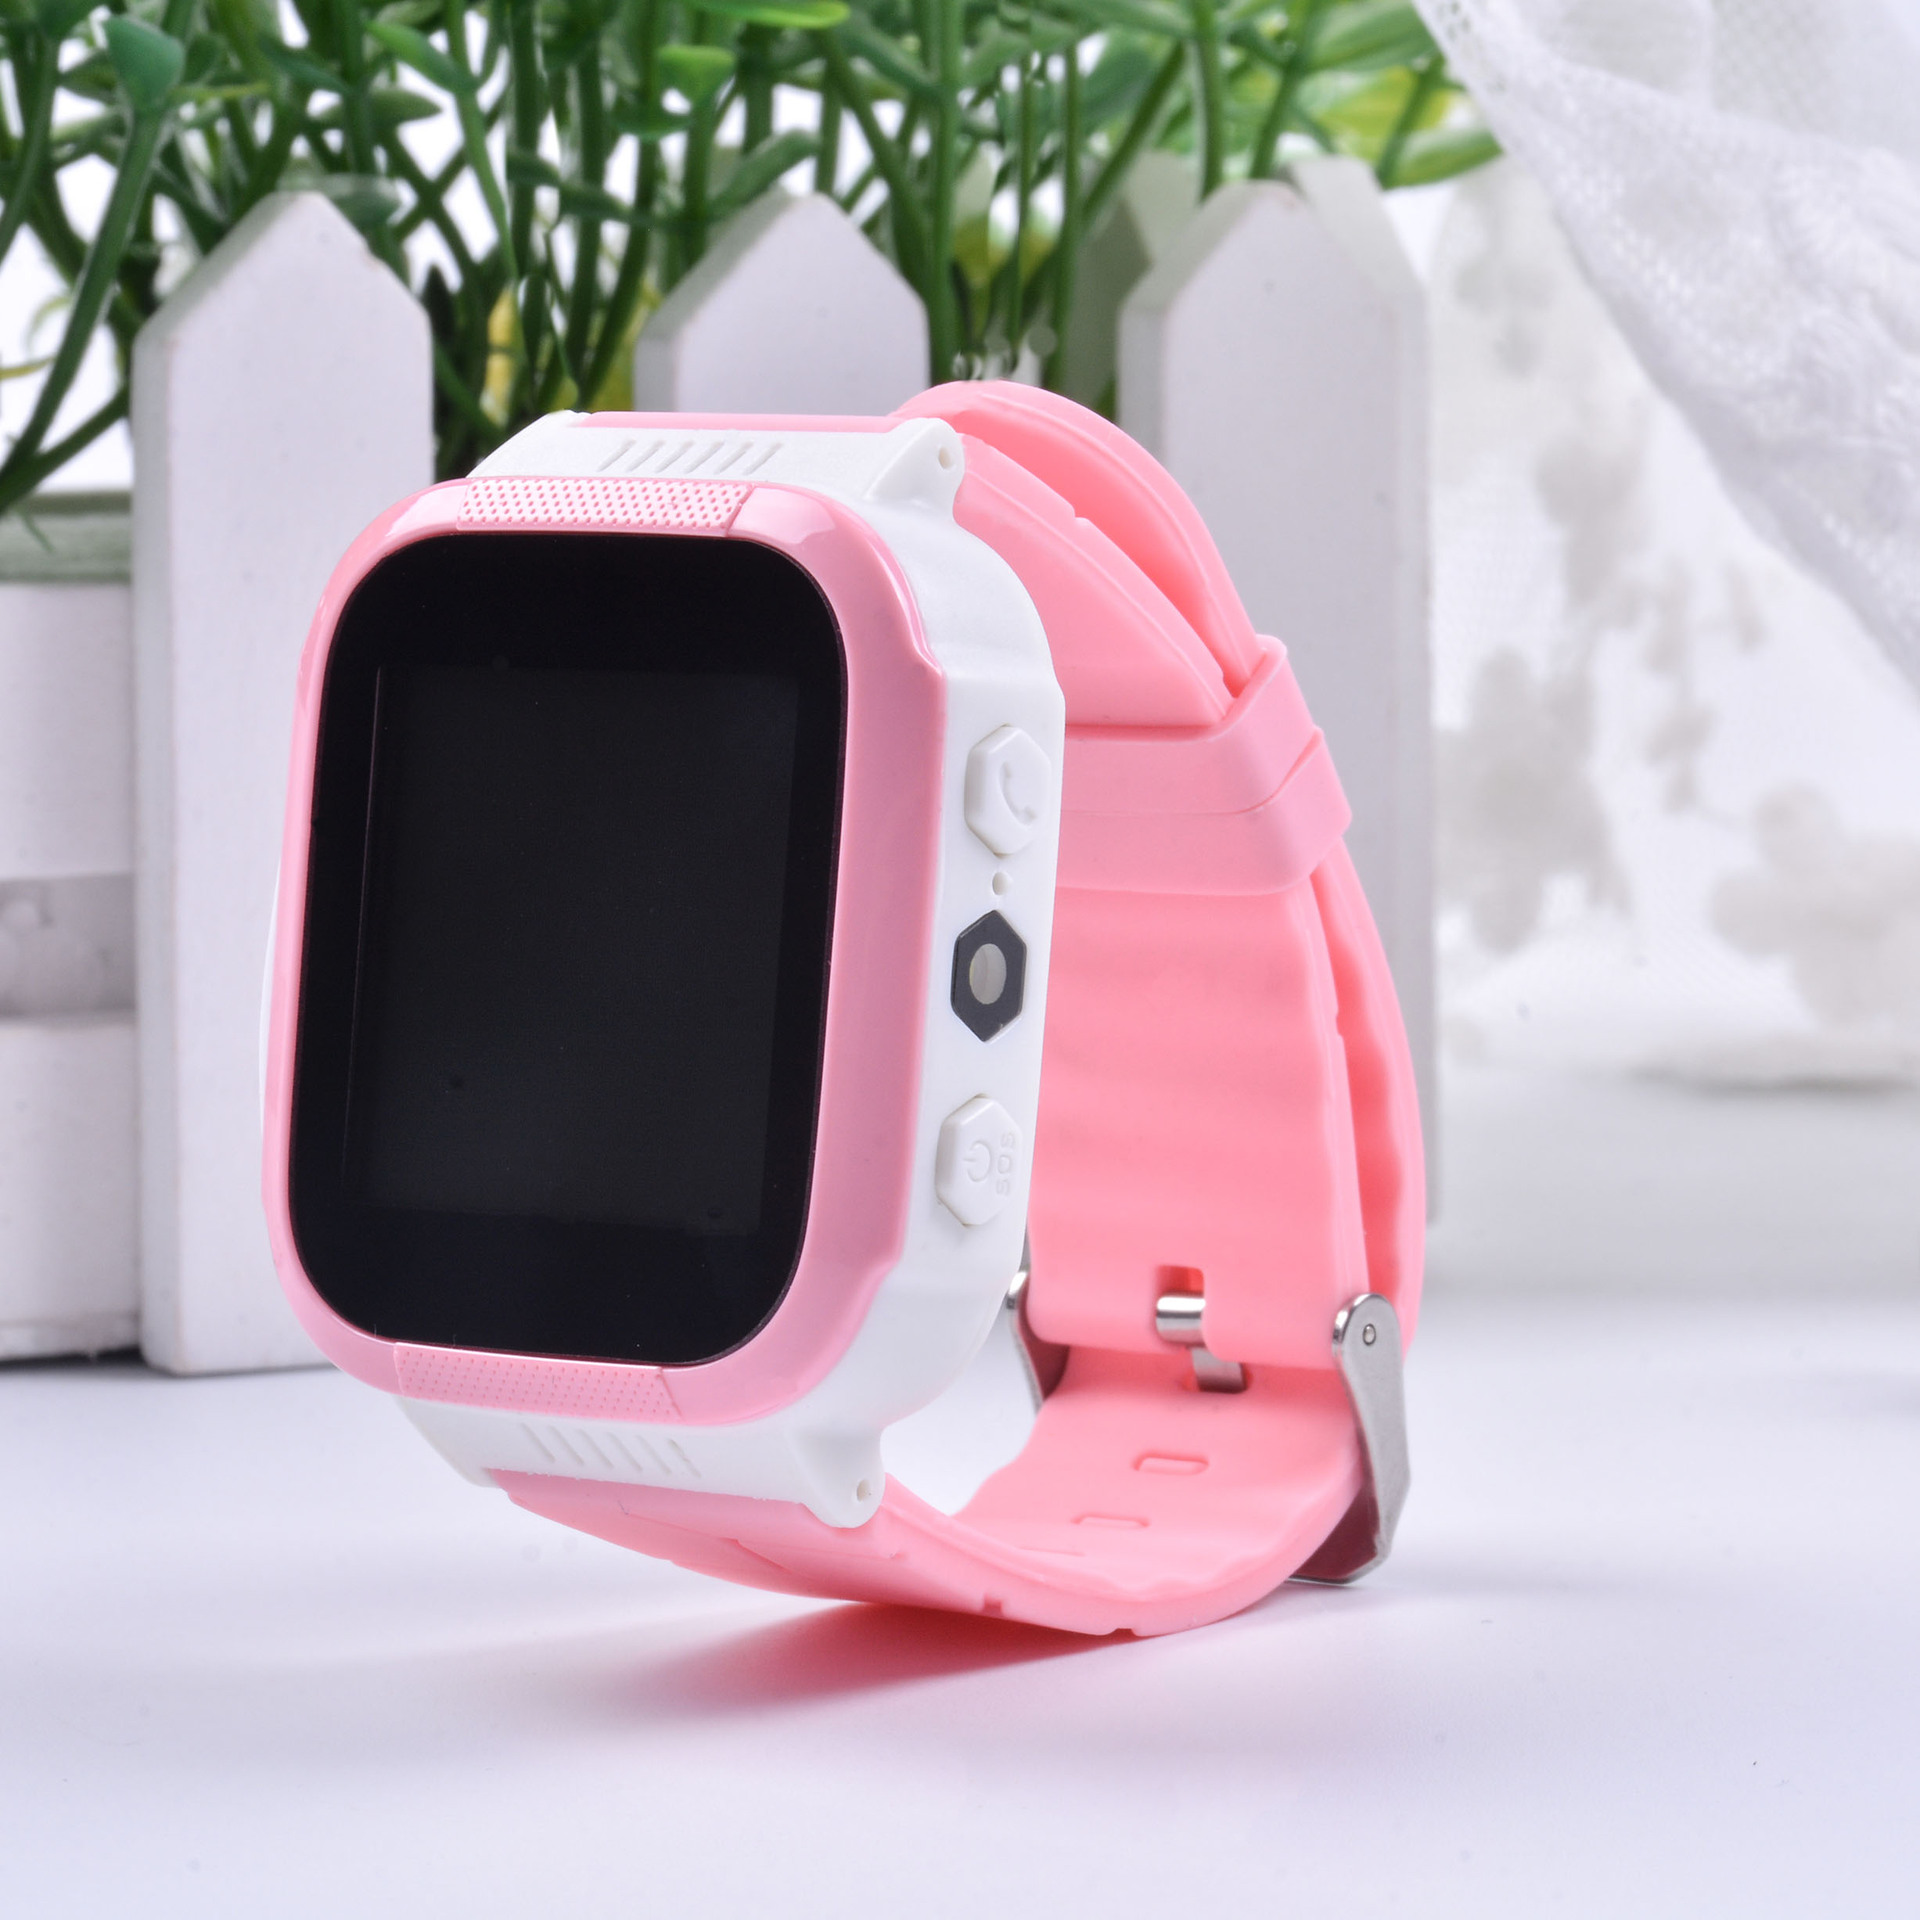 Children's Positioning Watch Phone New Smart Positioning Button Multi-function Waterproof Student Anti-lost Gift - MORE OFFERS, PLEASE CONTACT CUSTOMER SERVICE